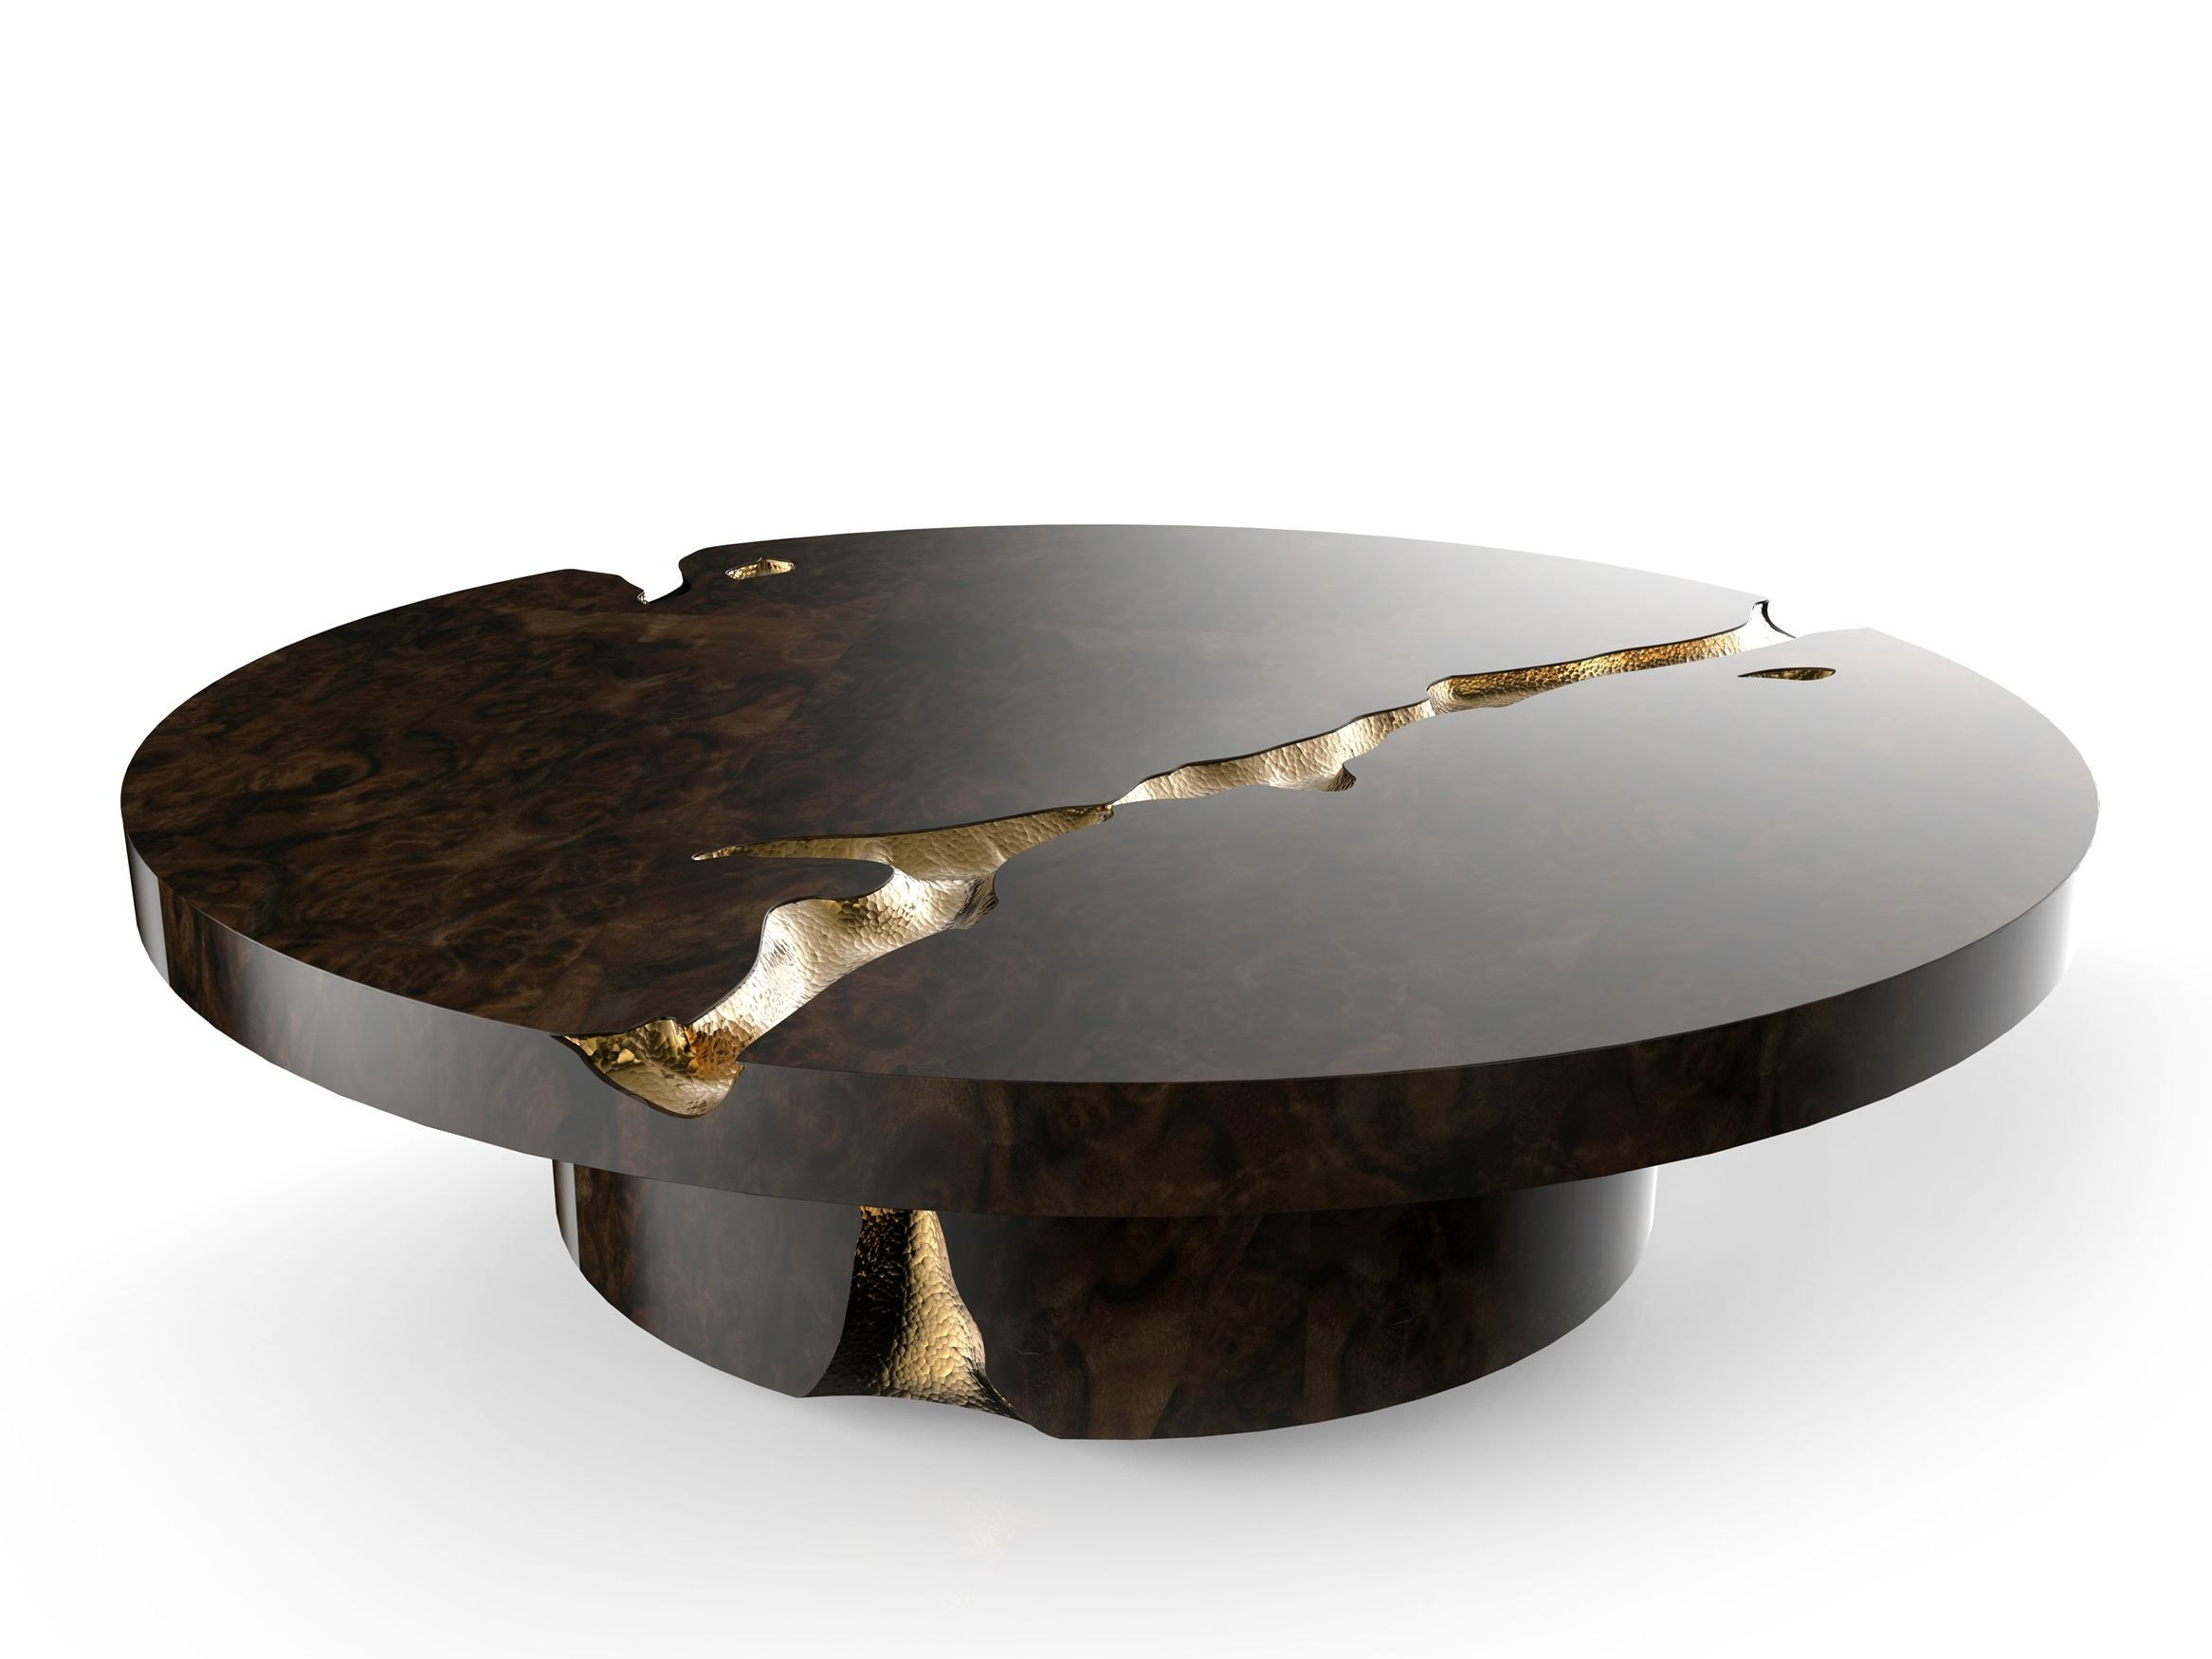 best furniturecoffee table images on pinterest  tables  - empire coffee table by boca do lobo